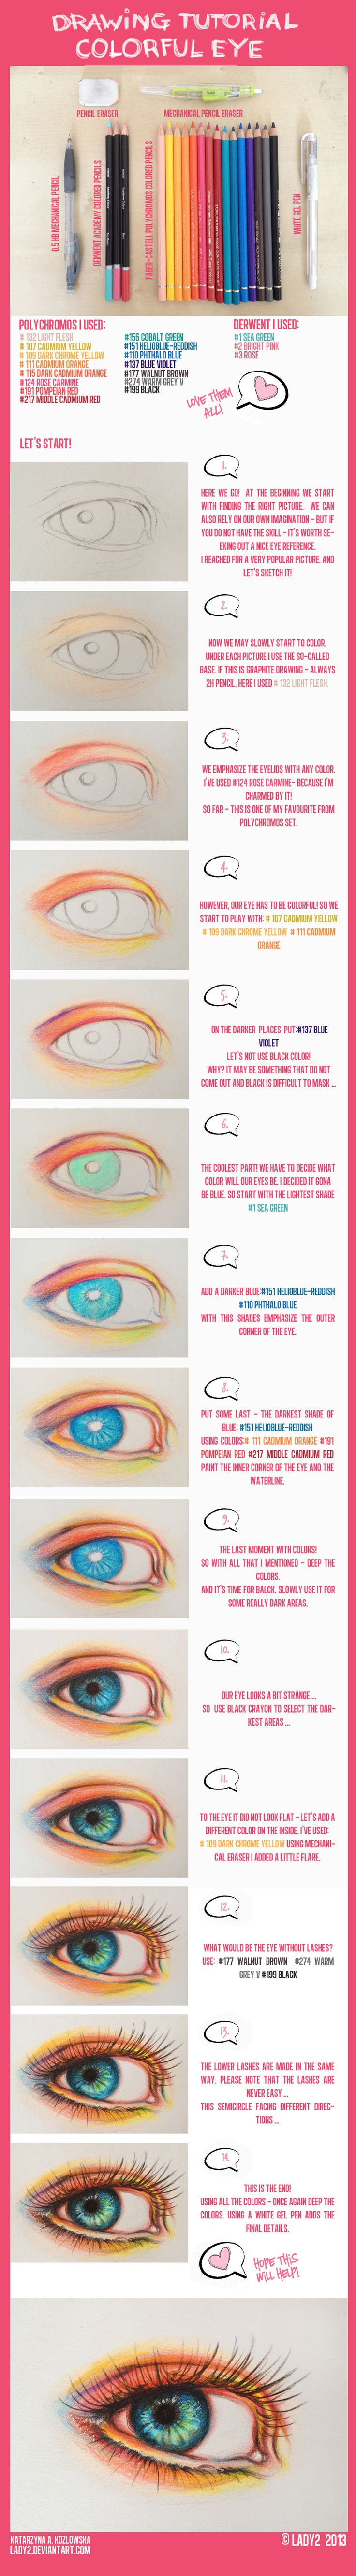 asics kayano online cheap colored pencil tutorial  drawing an eye